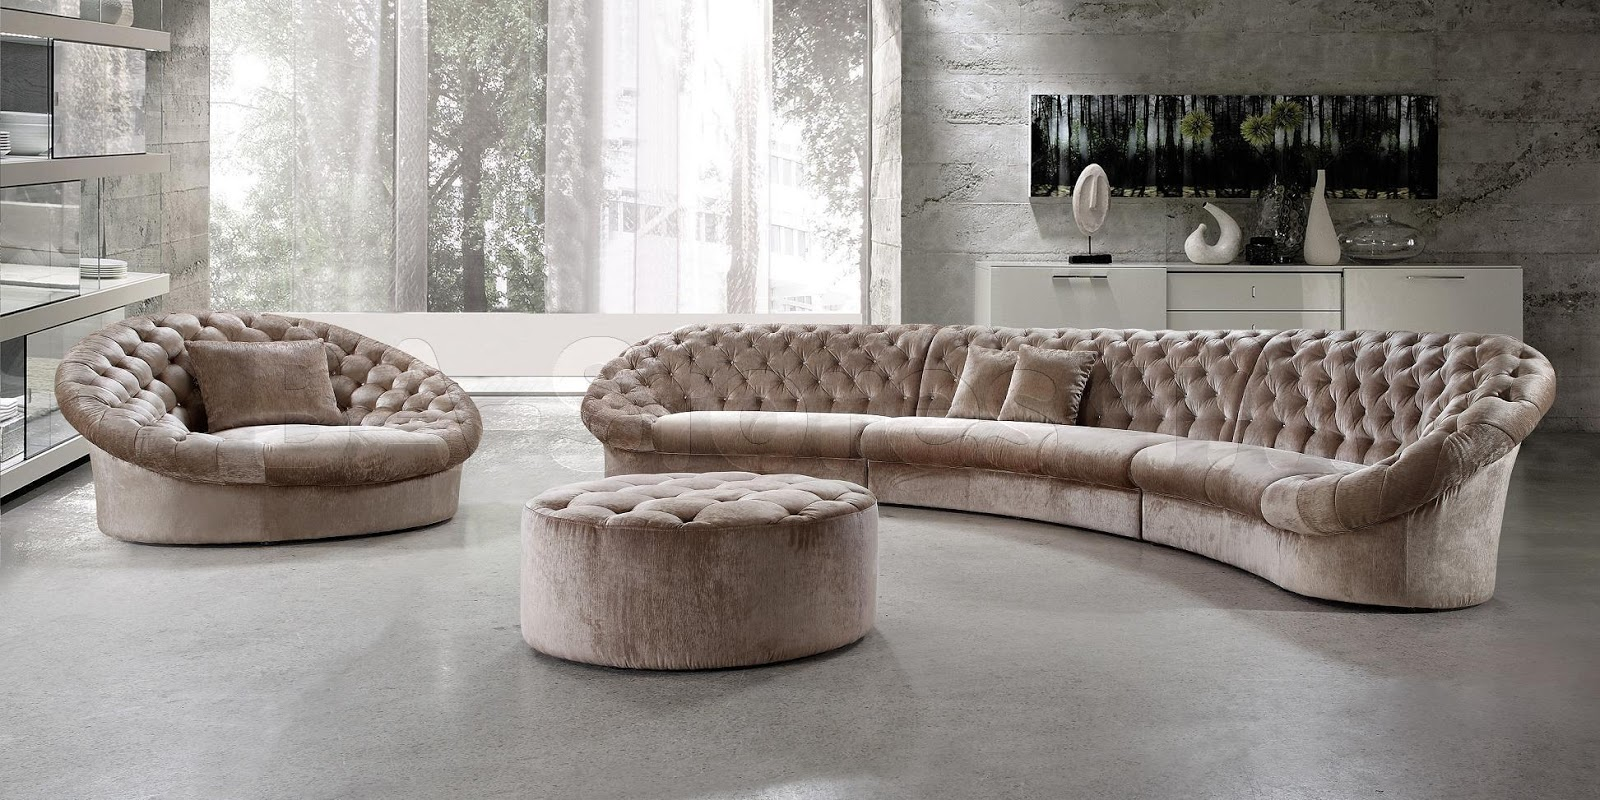 Modern furniture modern sofa beautiful designs Circular couches living room furniture